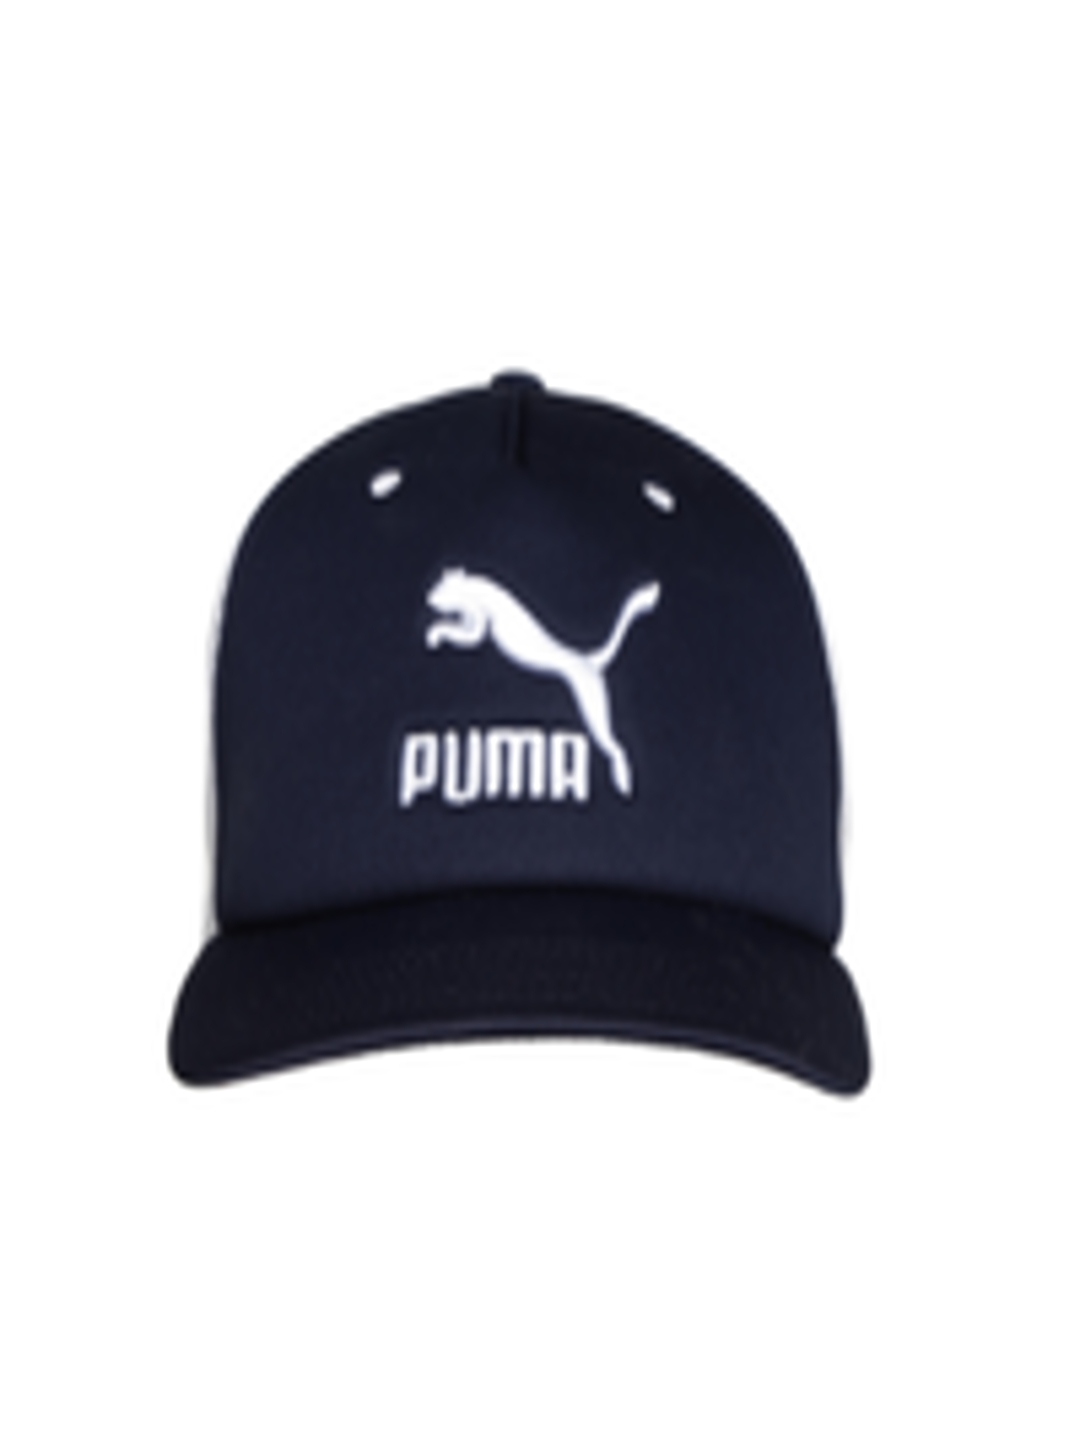 c883cb86e0b Buy Puma Unisex White   Navy ARCHIVE Trucker Cap - Caps for Unisex 2030602